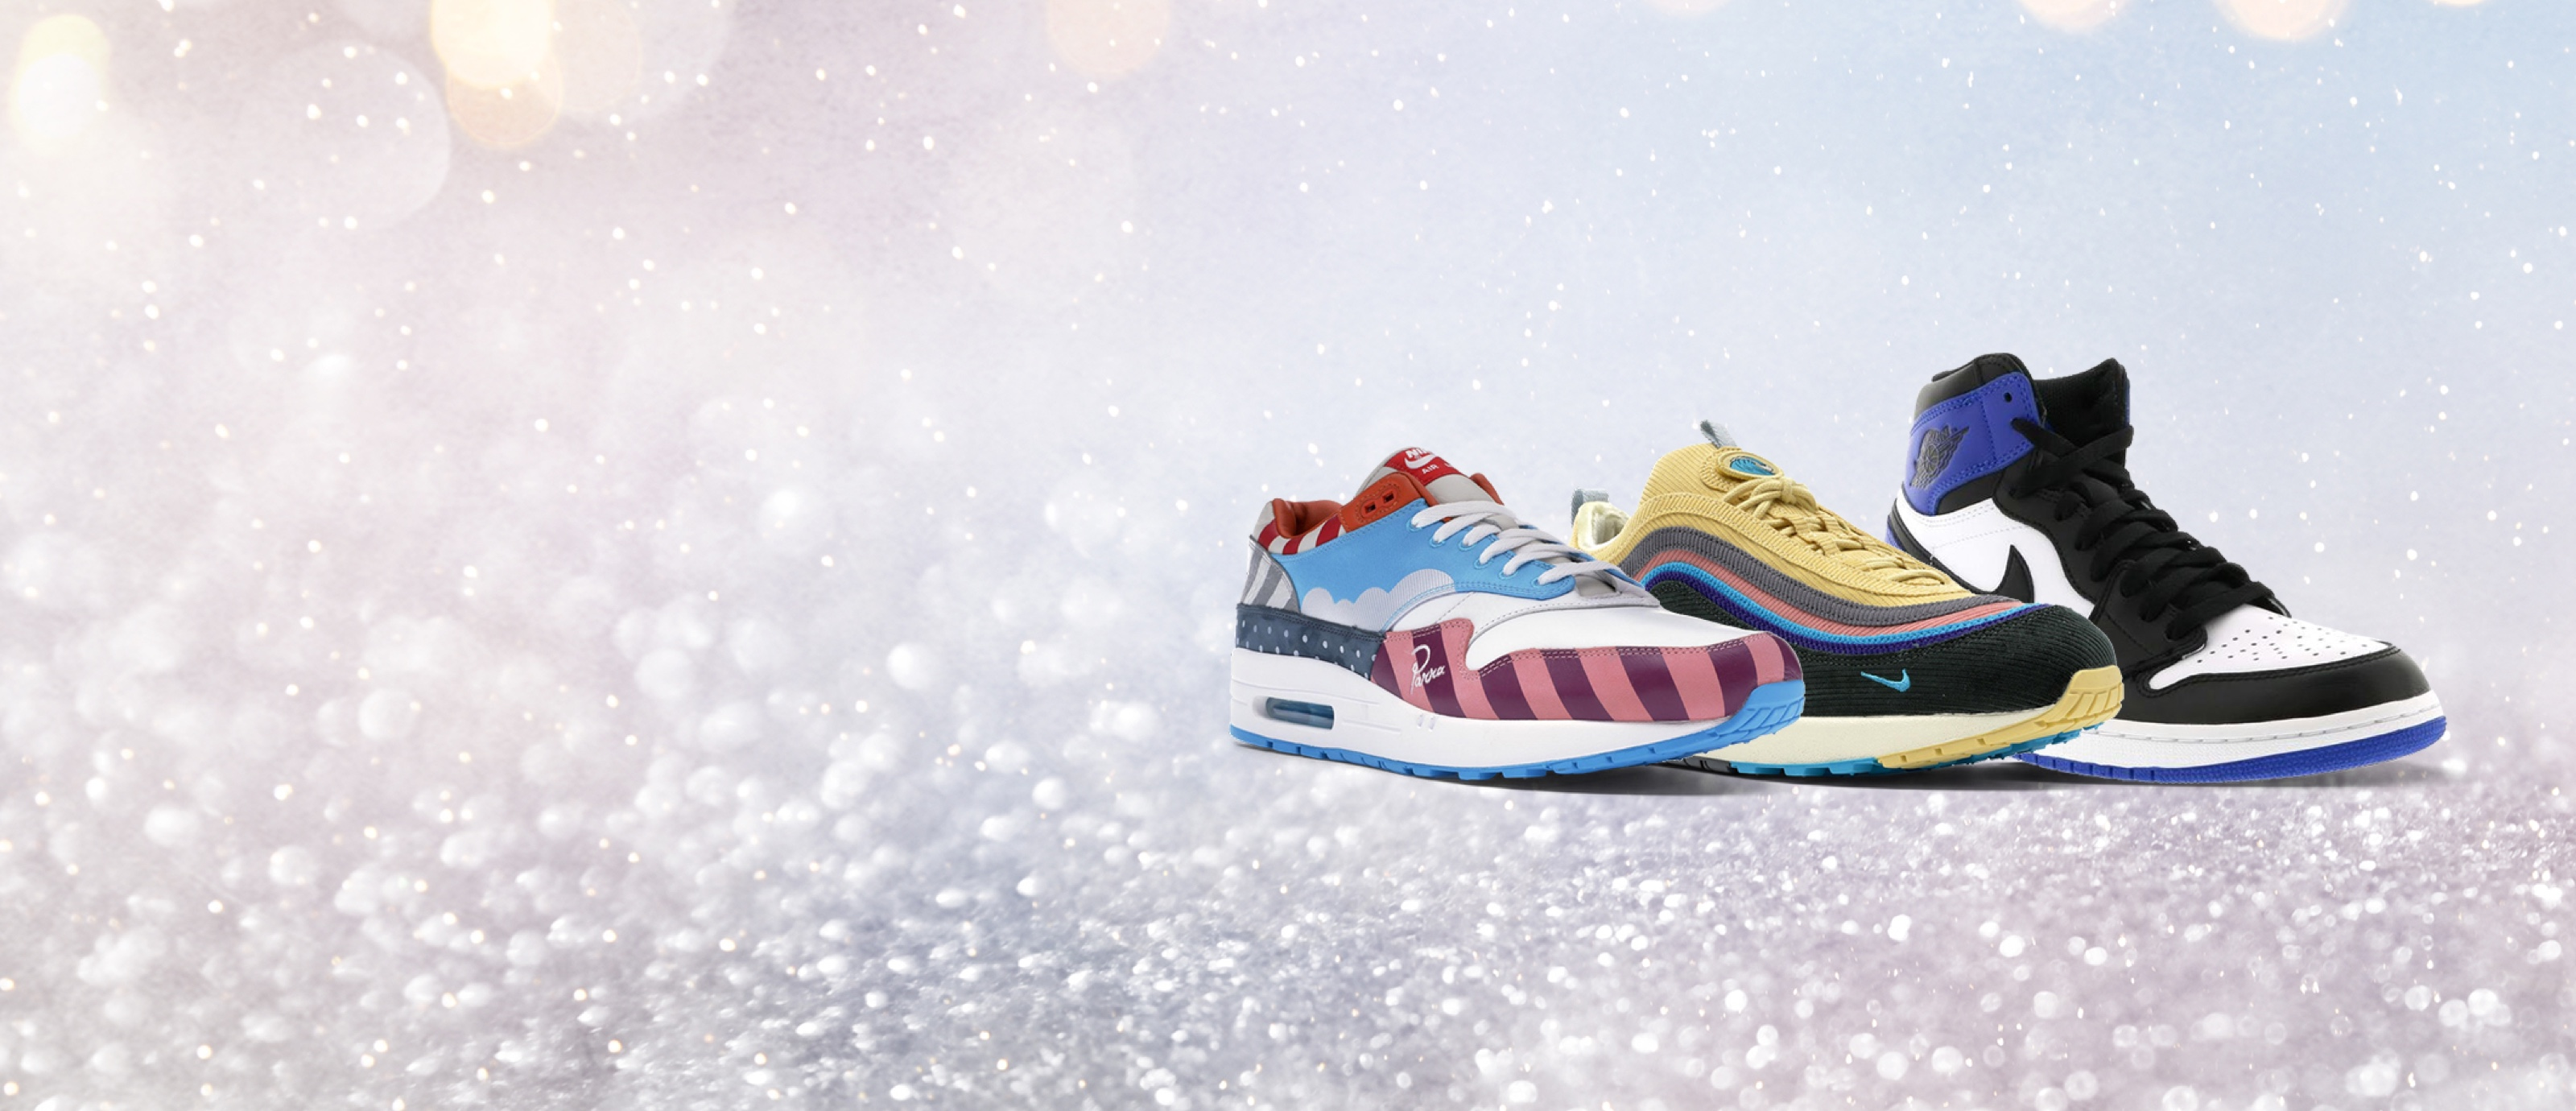 online store 273d6 ebf0e Holiday Heat - Win Amazing Kicks for Just  1